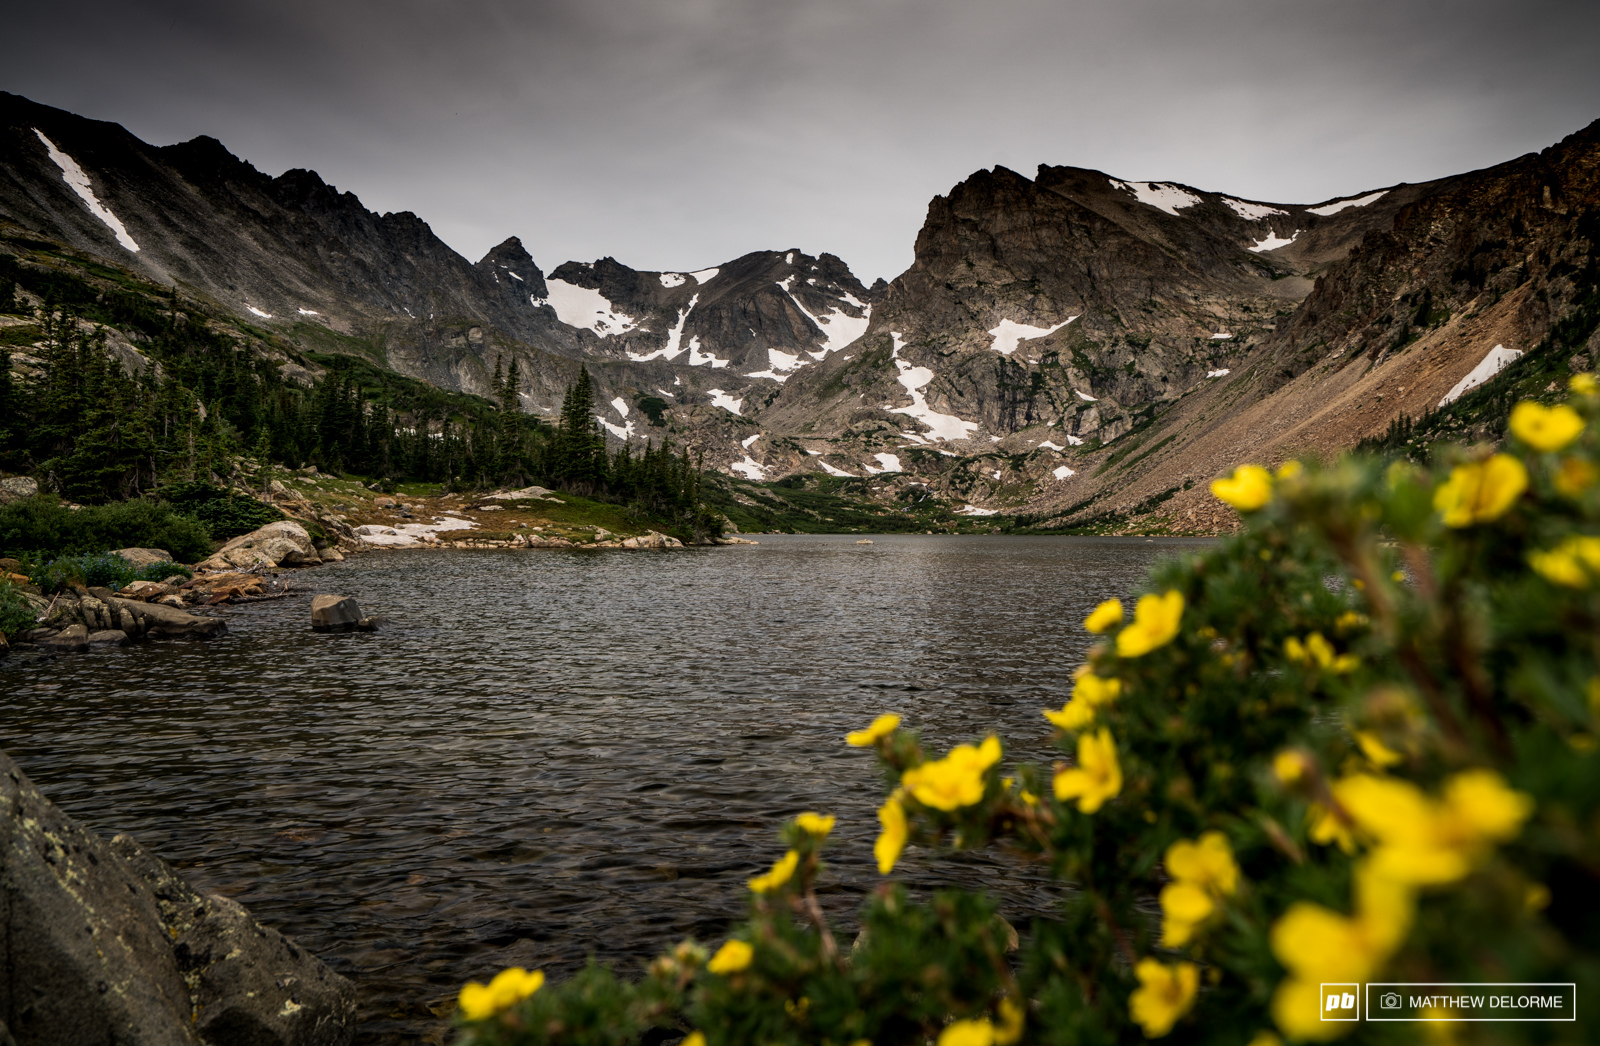 We stopped along the way from Denver to get some views in the Indian Peaks Wilderness.